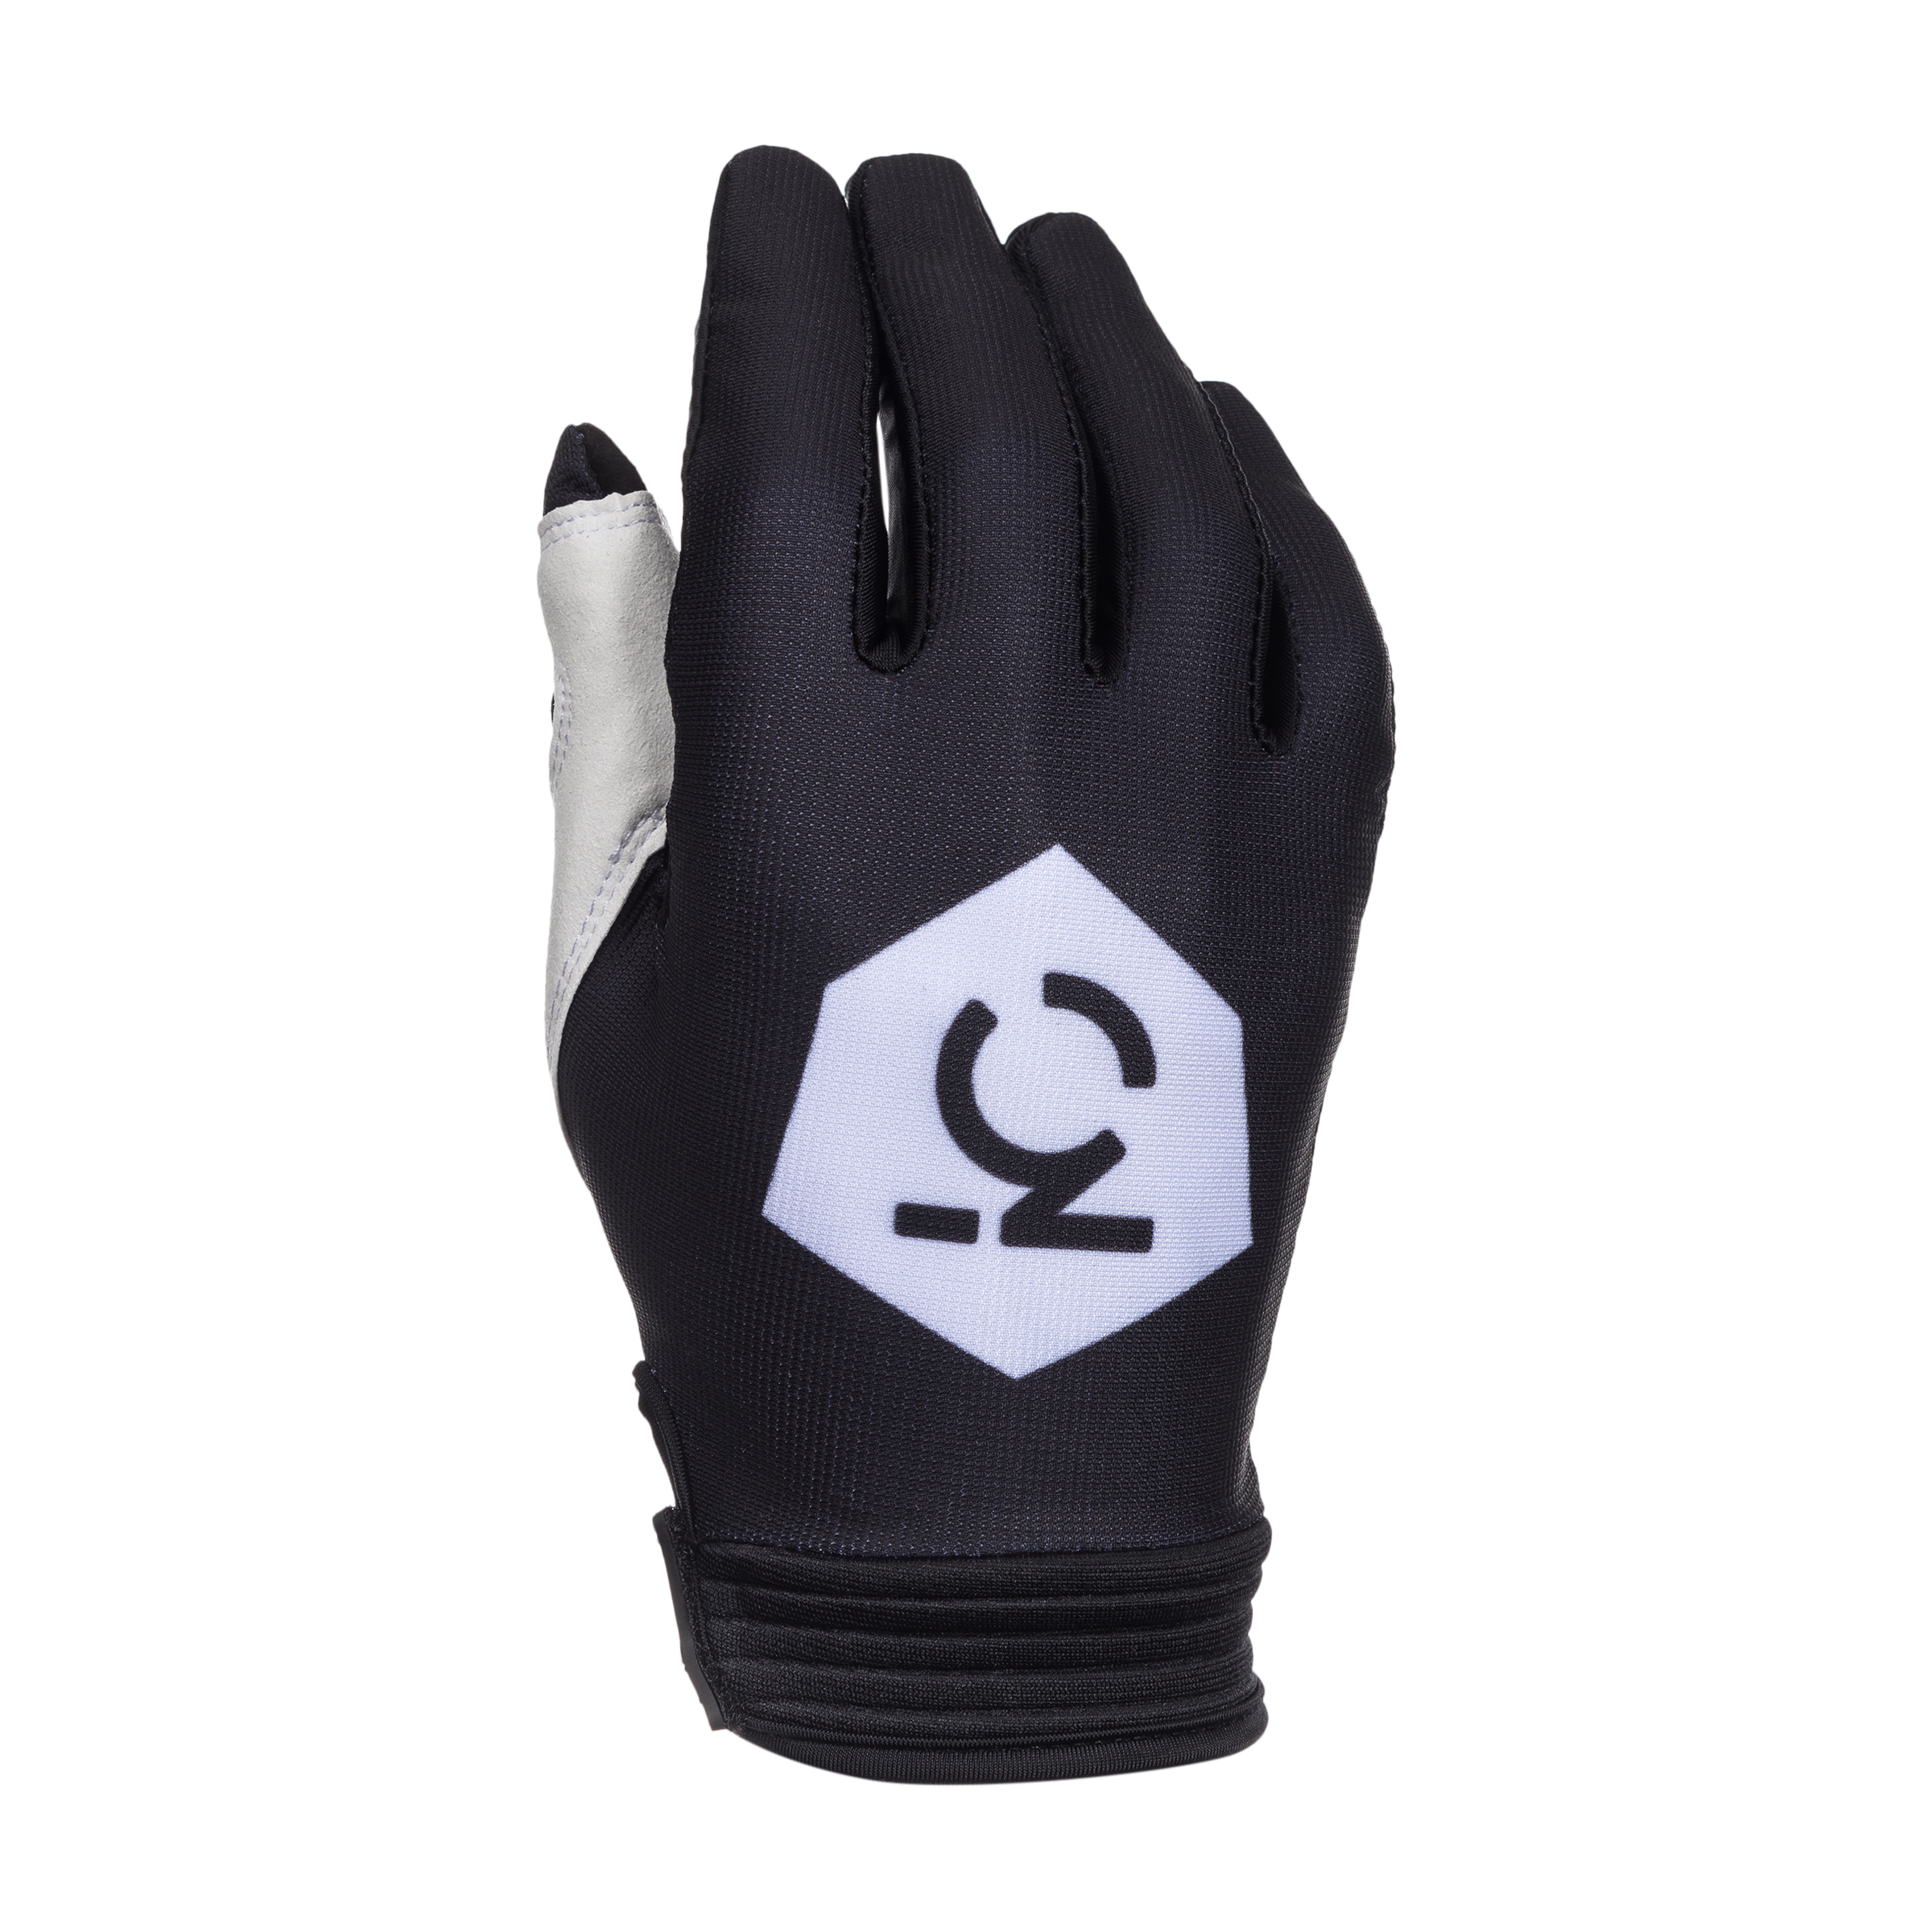 Gloves product picture